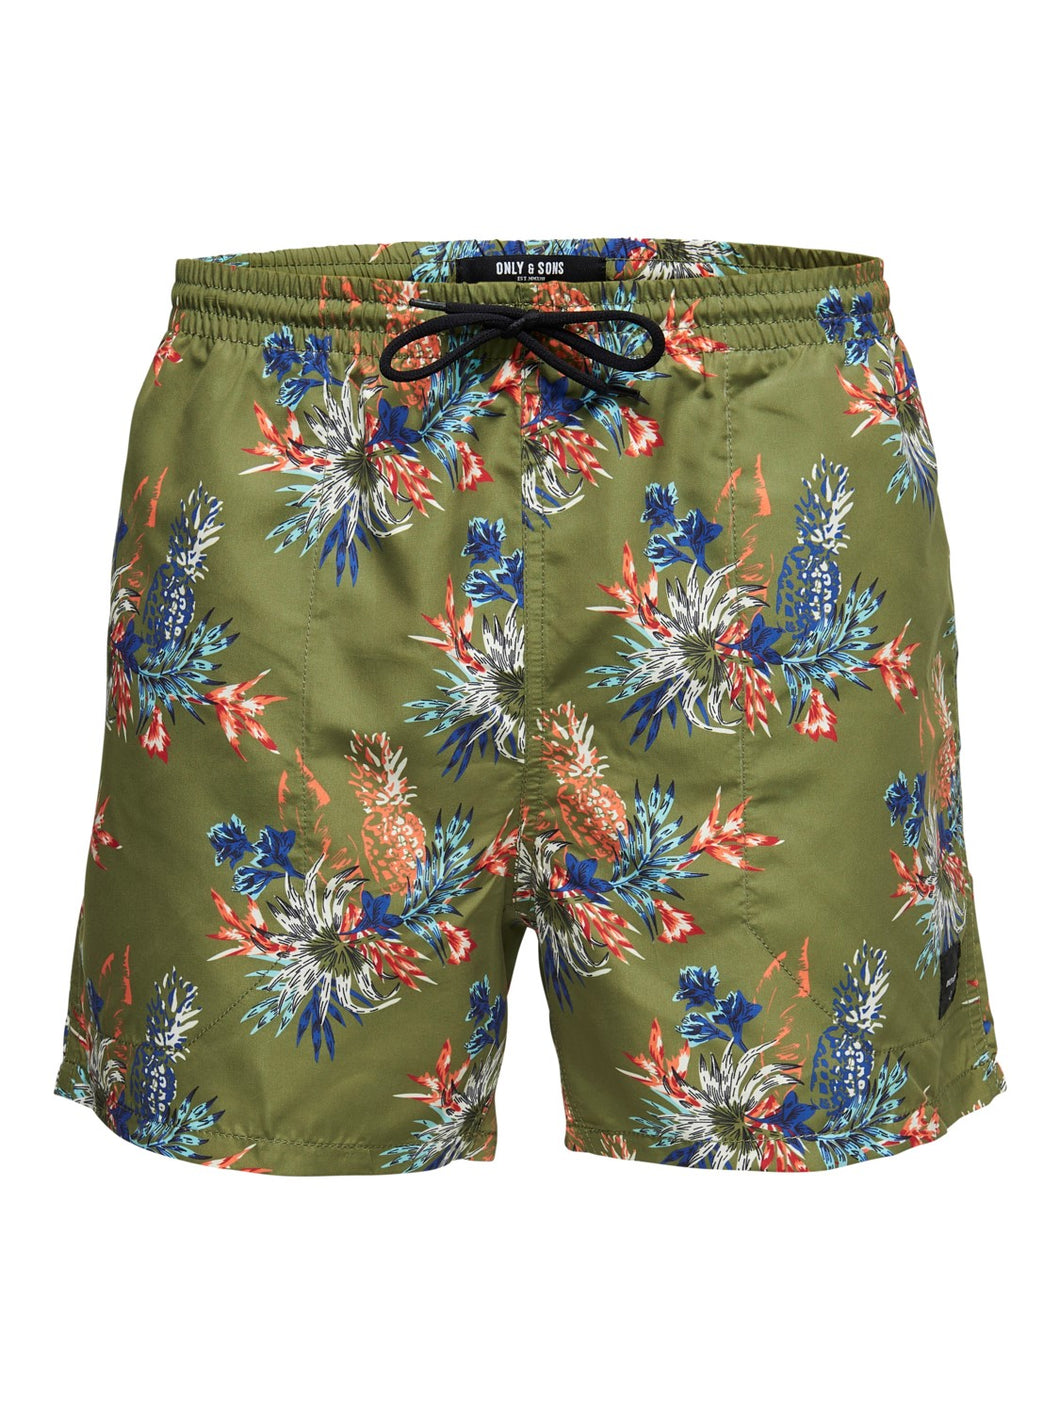 Only & Sons Tan Swimshorts All Over Print Olive